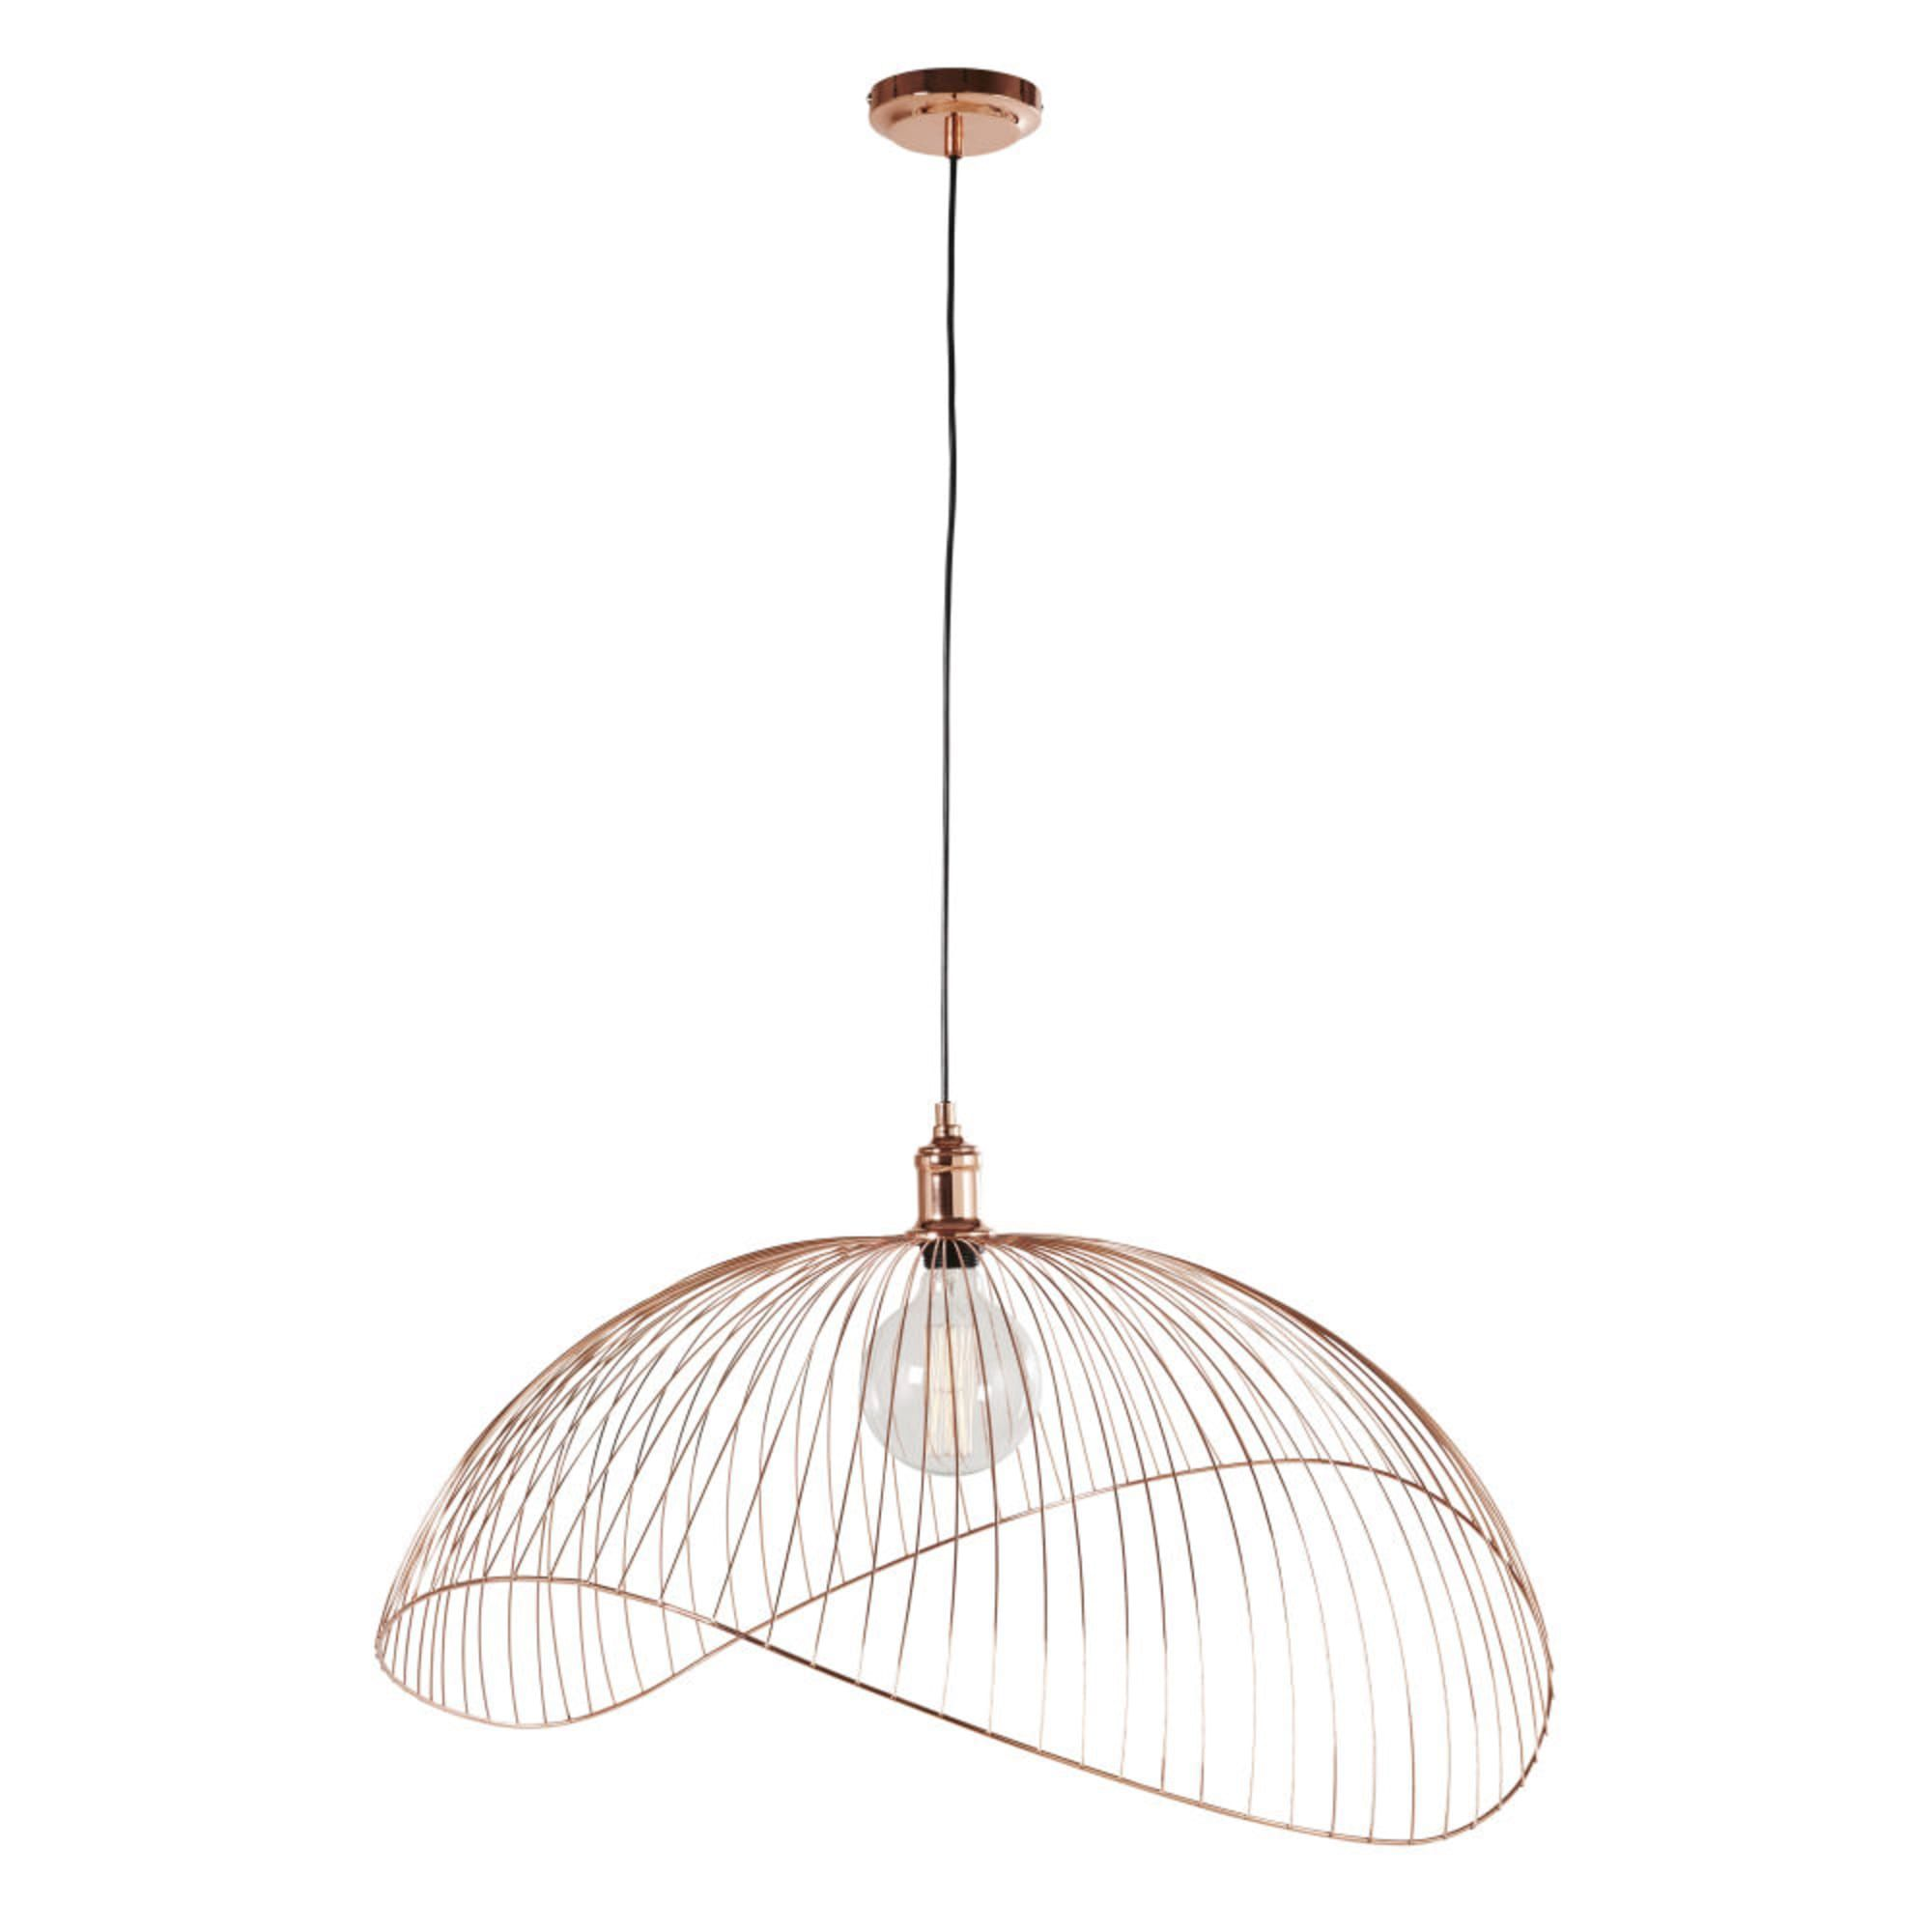 Copper Wire Pendant In 2020 Ceiling Lamp Ceiling Plant Decor